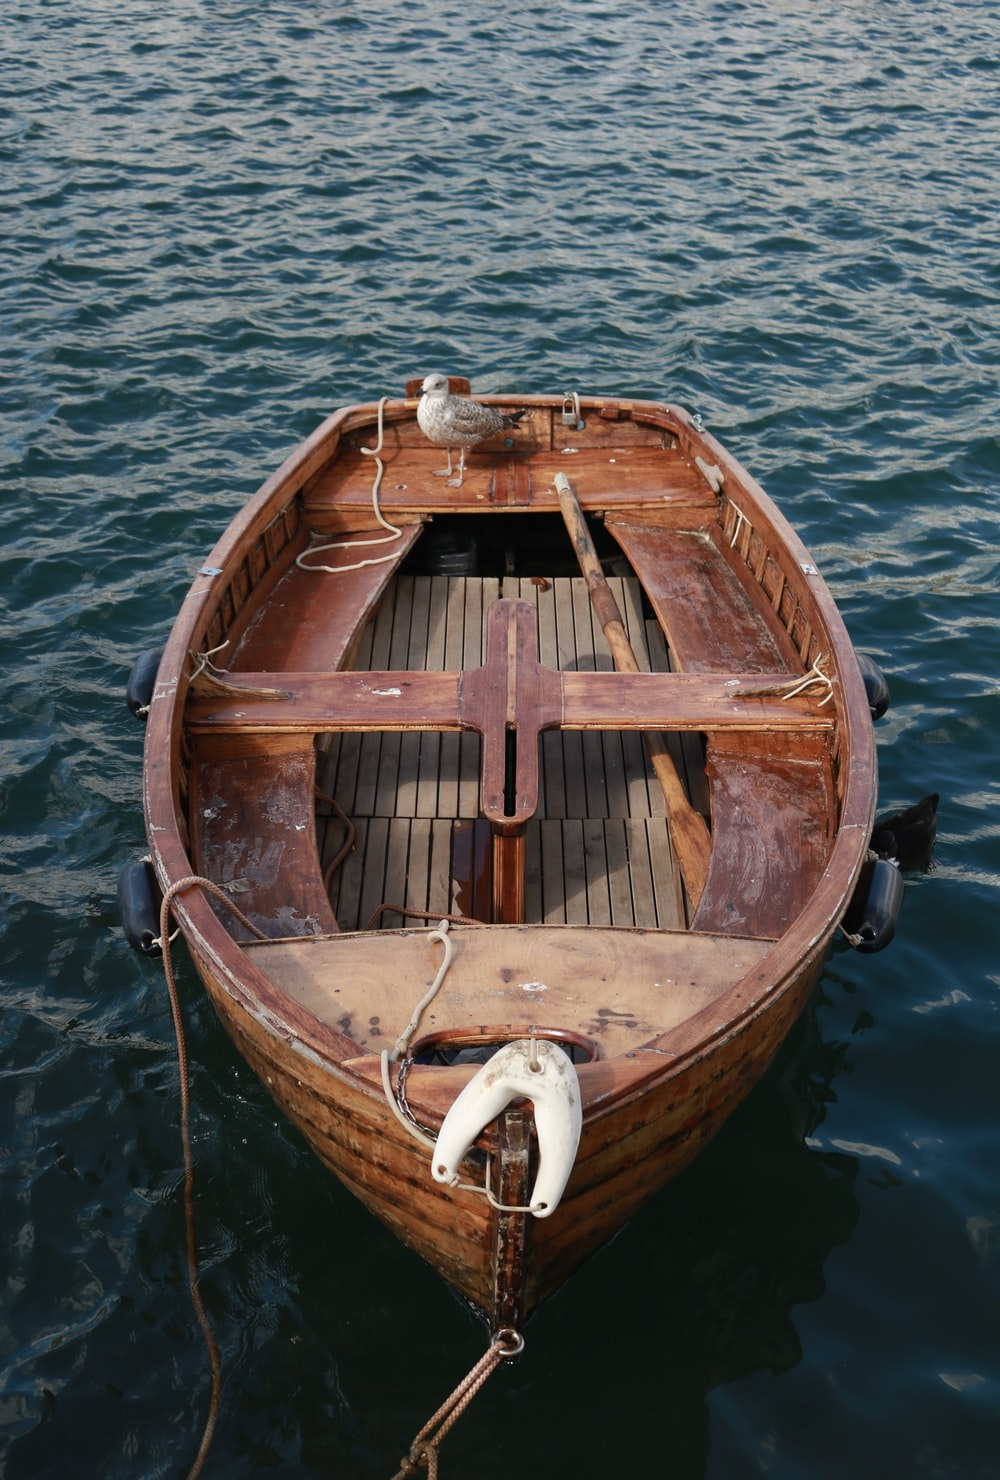 photo of brown wooden canoe boat